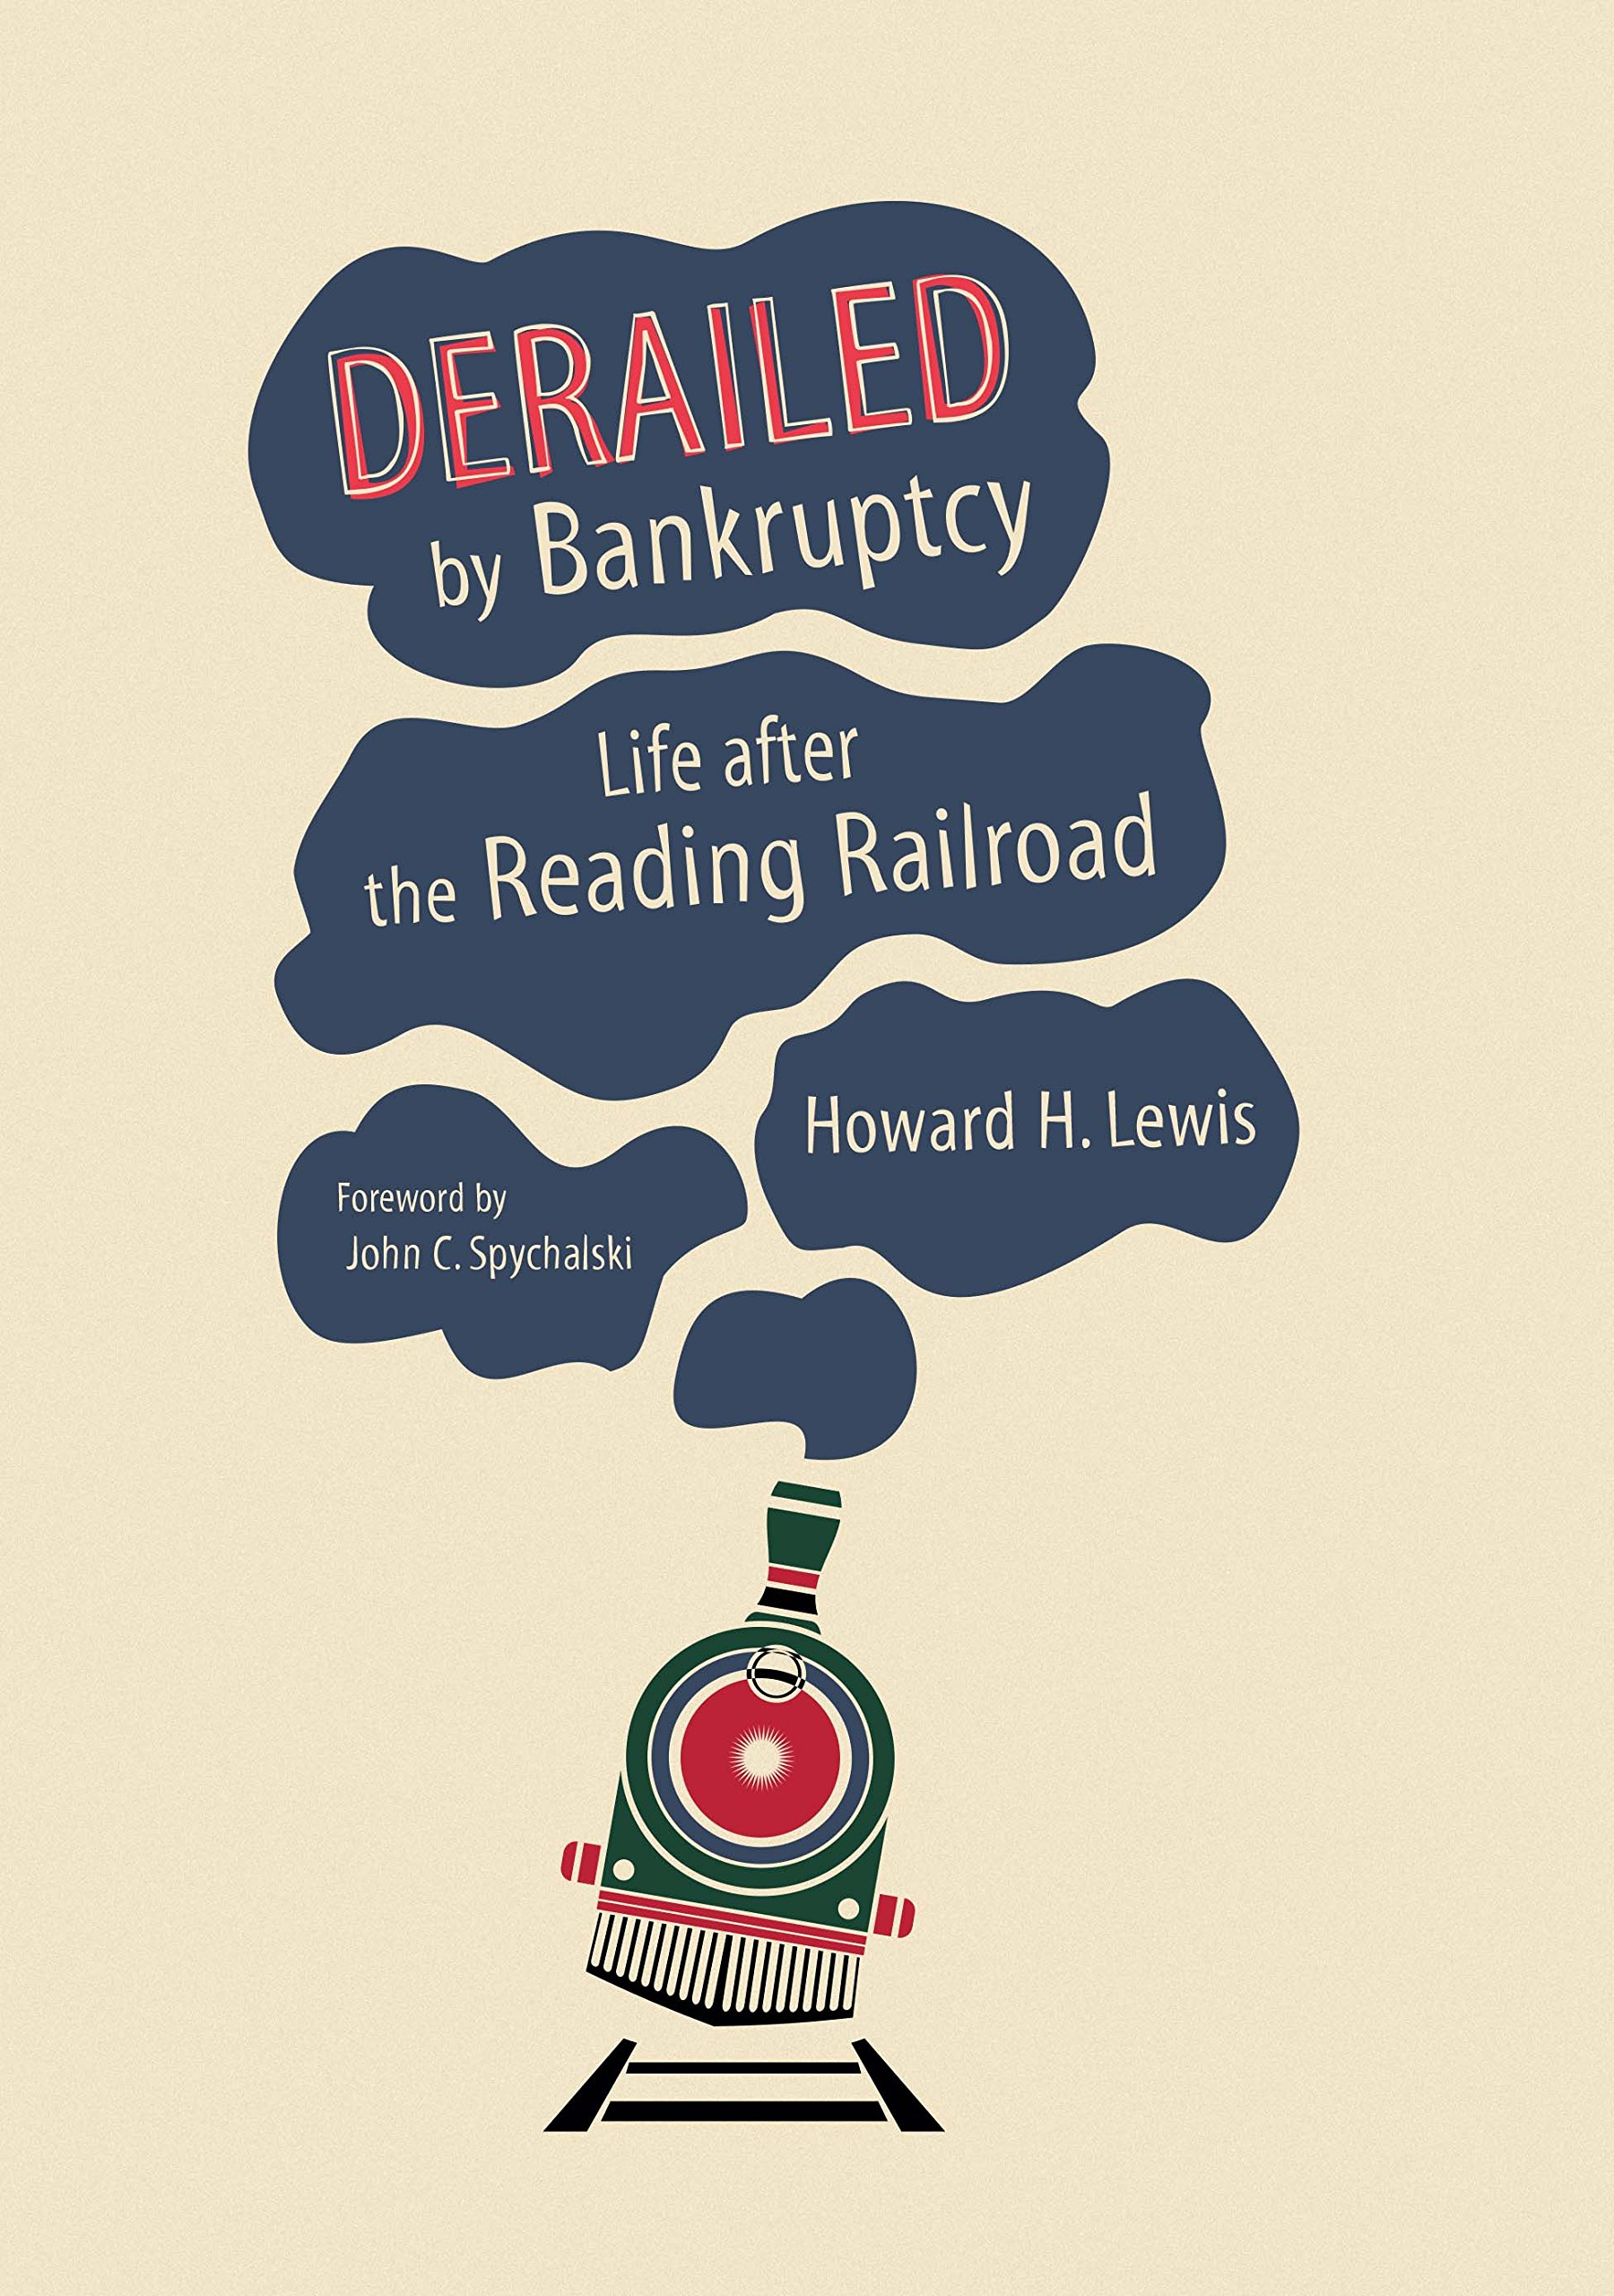 Derailed by Bankruptcy: Life after the Reading Railroad (Railroads Past and Present)